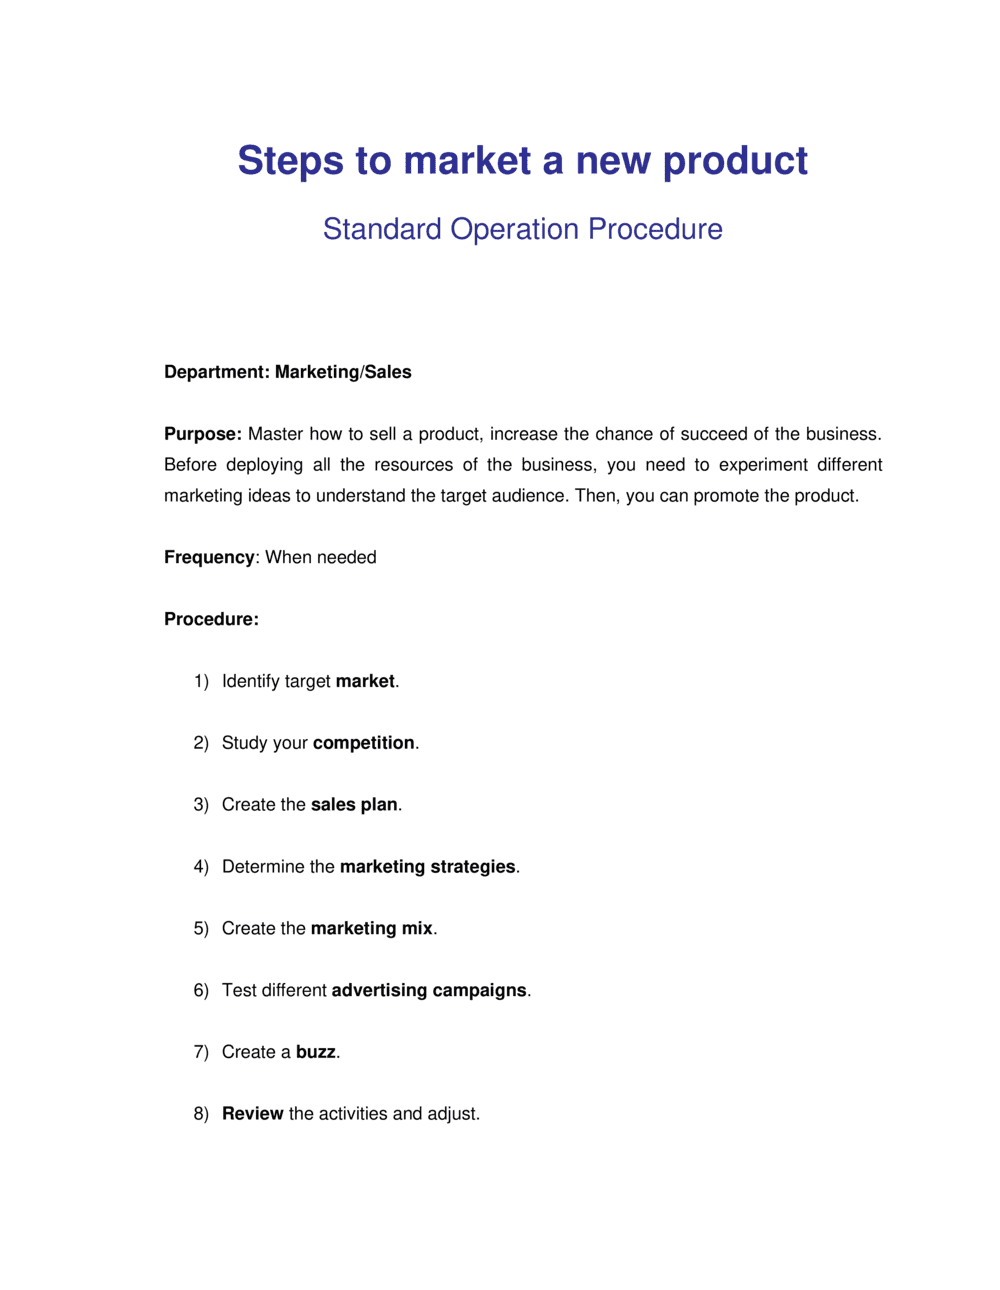 Business-in-a-Box's How to Market a New Product Template